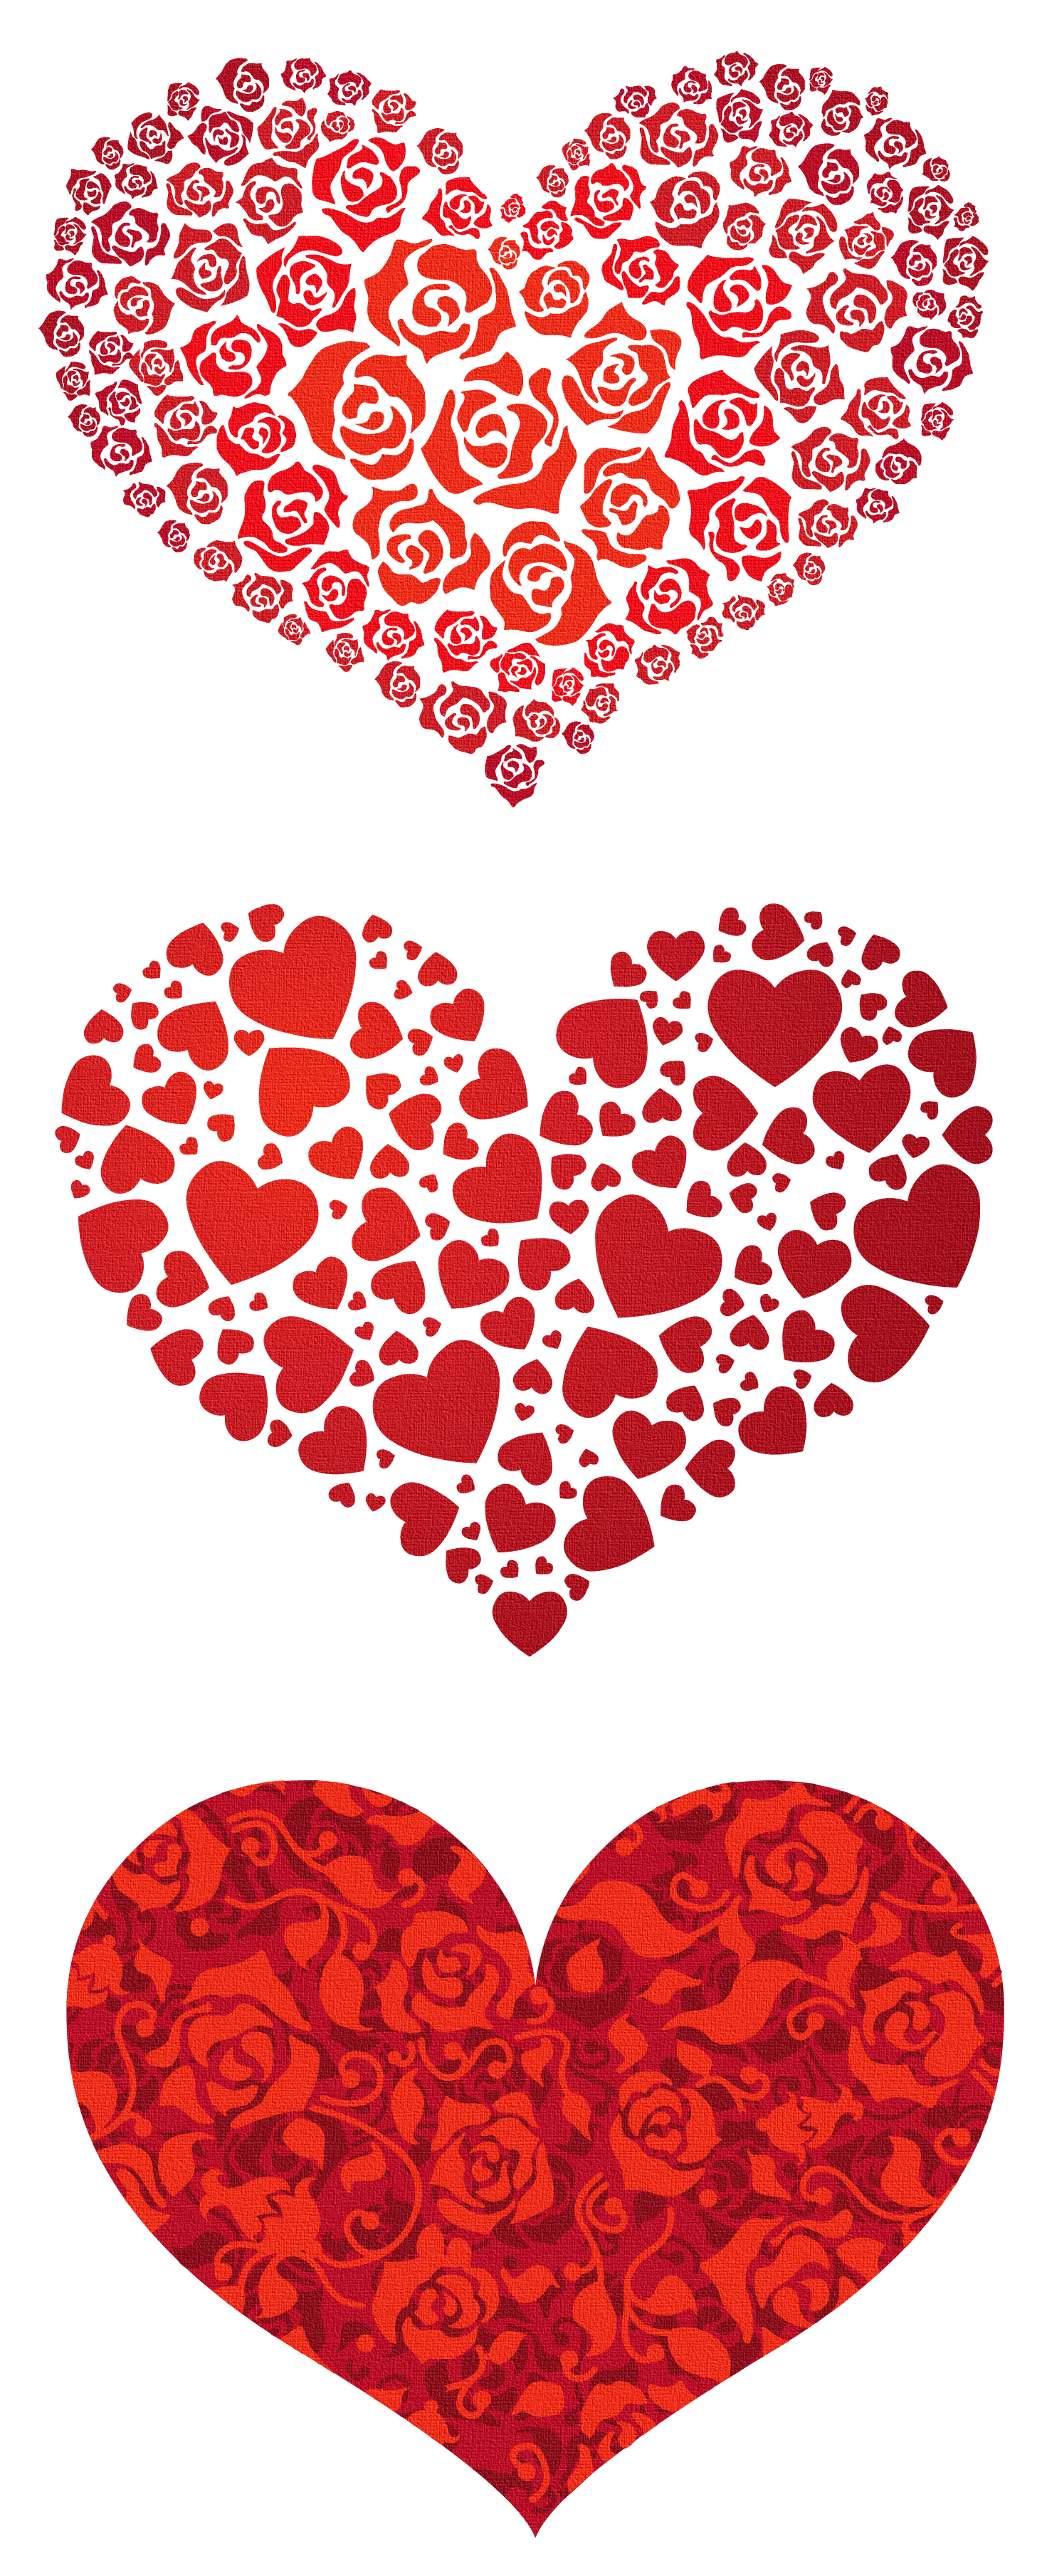 Red hearts transparent graphics. Clipart cookies heart